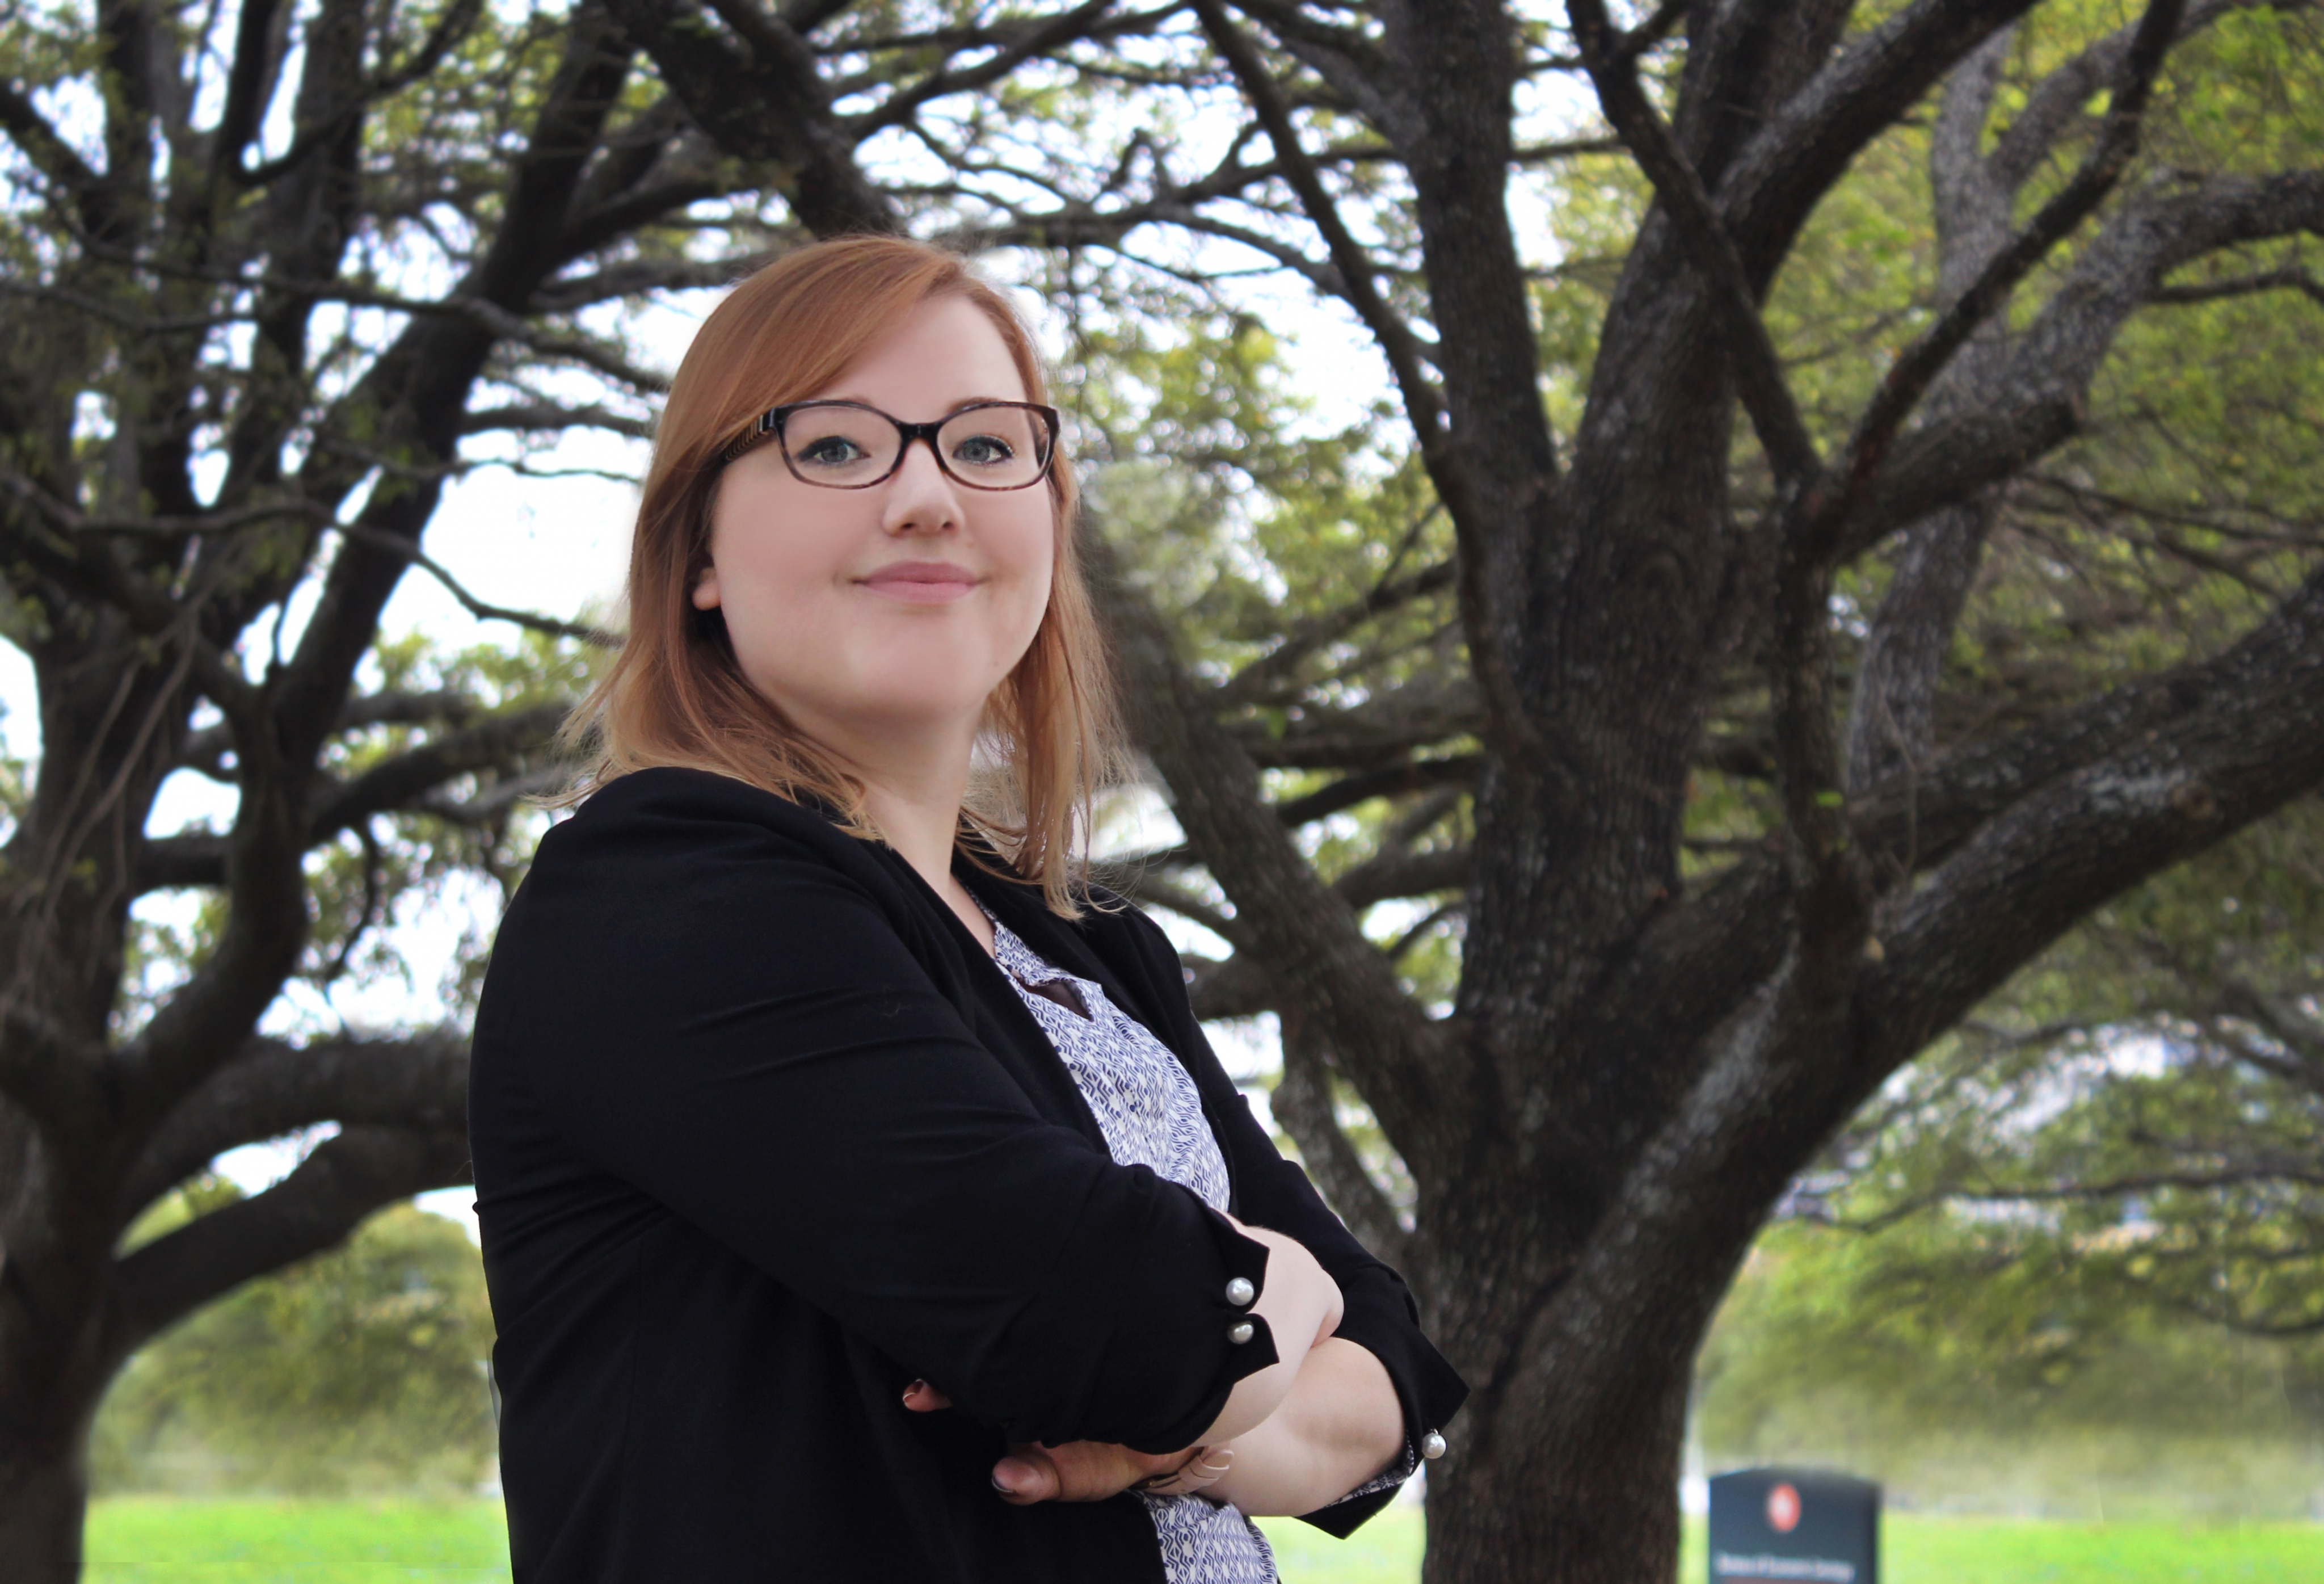 Sarah Prentice stands in front of the Bureau of Economic Geology building at the J. J. Pickle Research Campus.